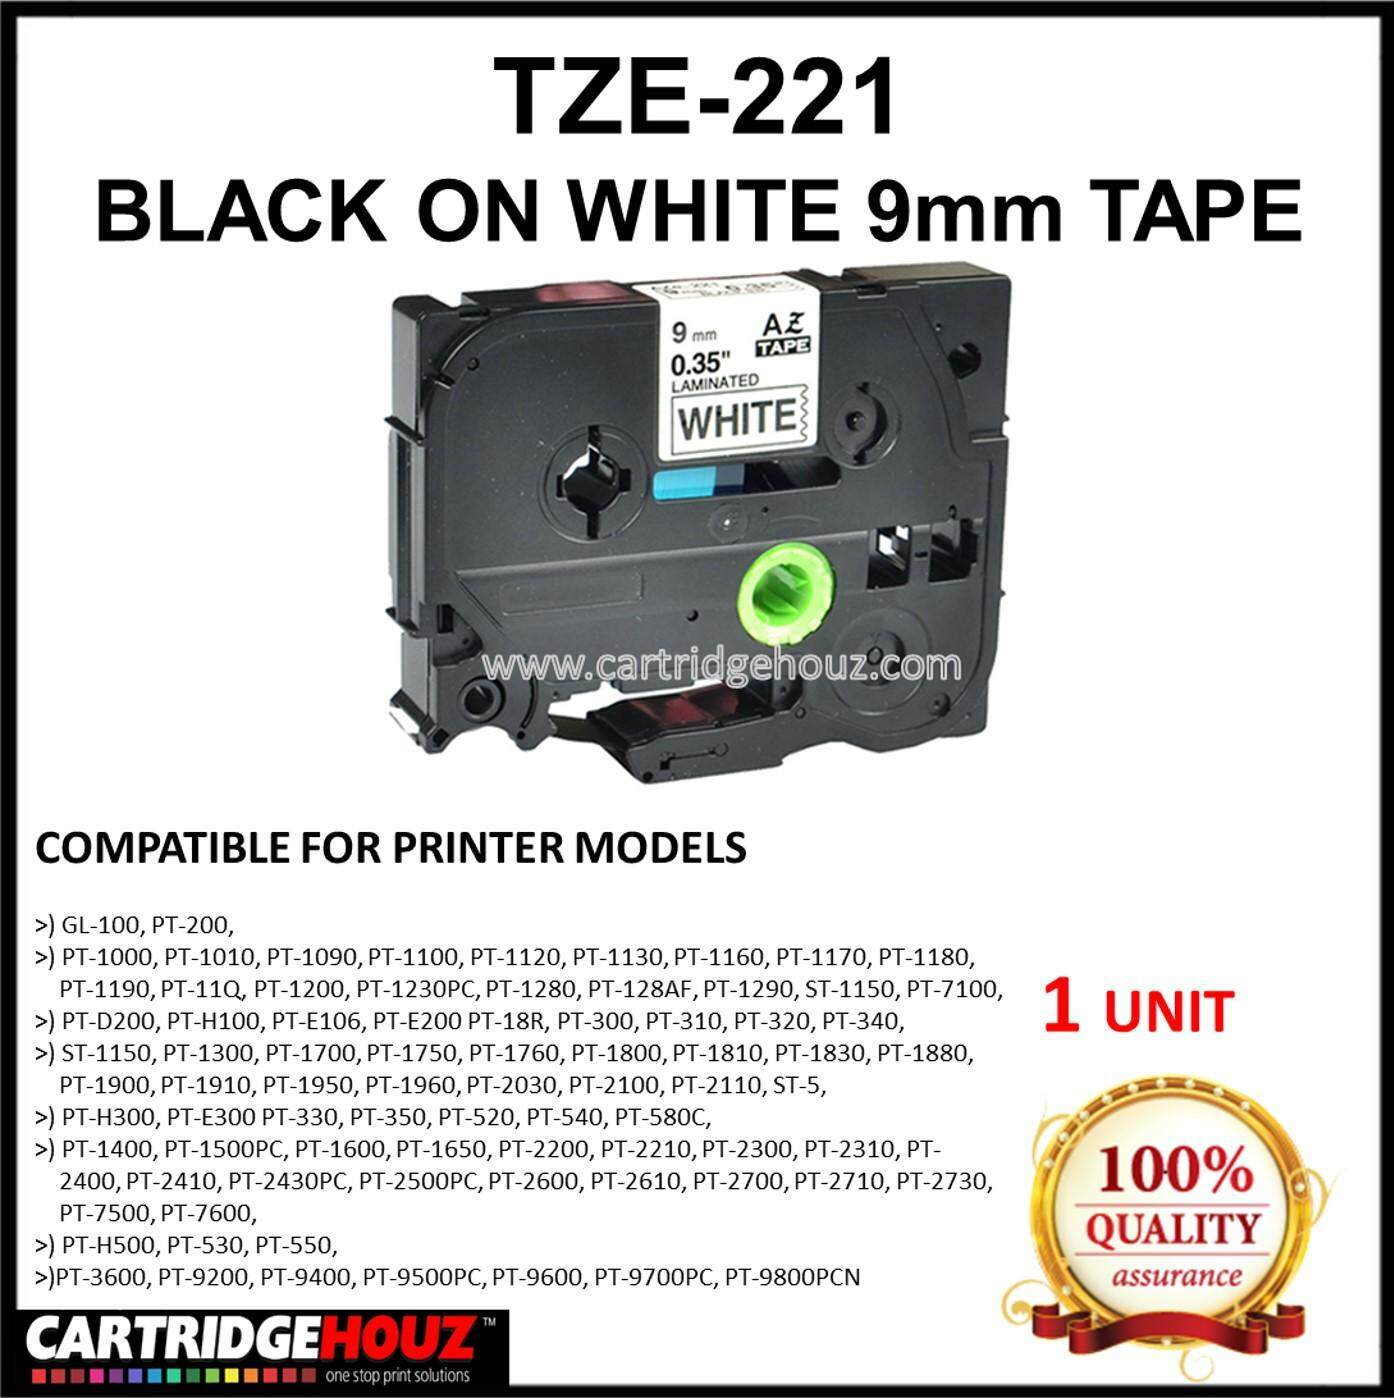 Compatible Brother P-Touch Tze-221 / Tze221 Black On White 9mmx8m Tape By Cartridge Houz